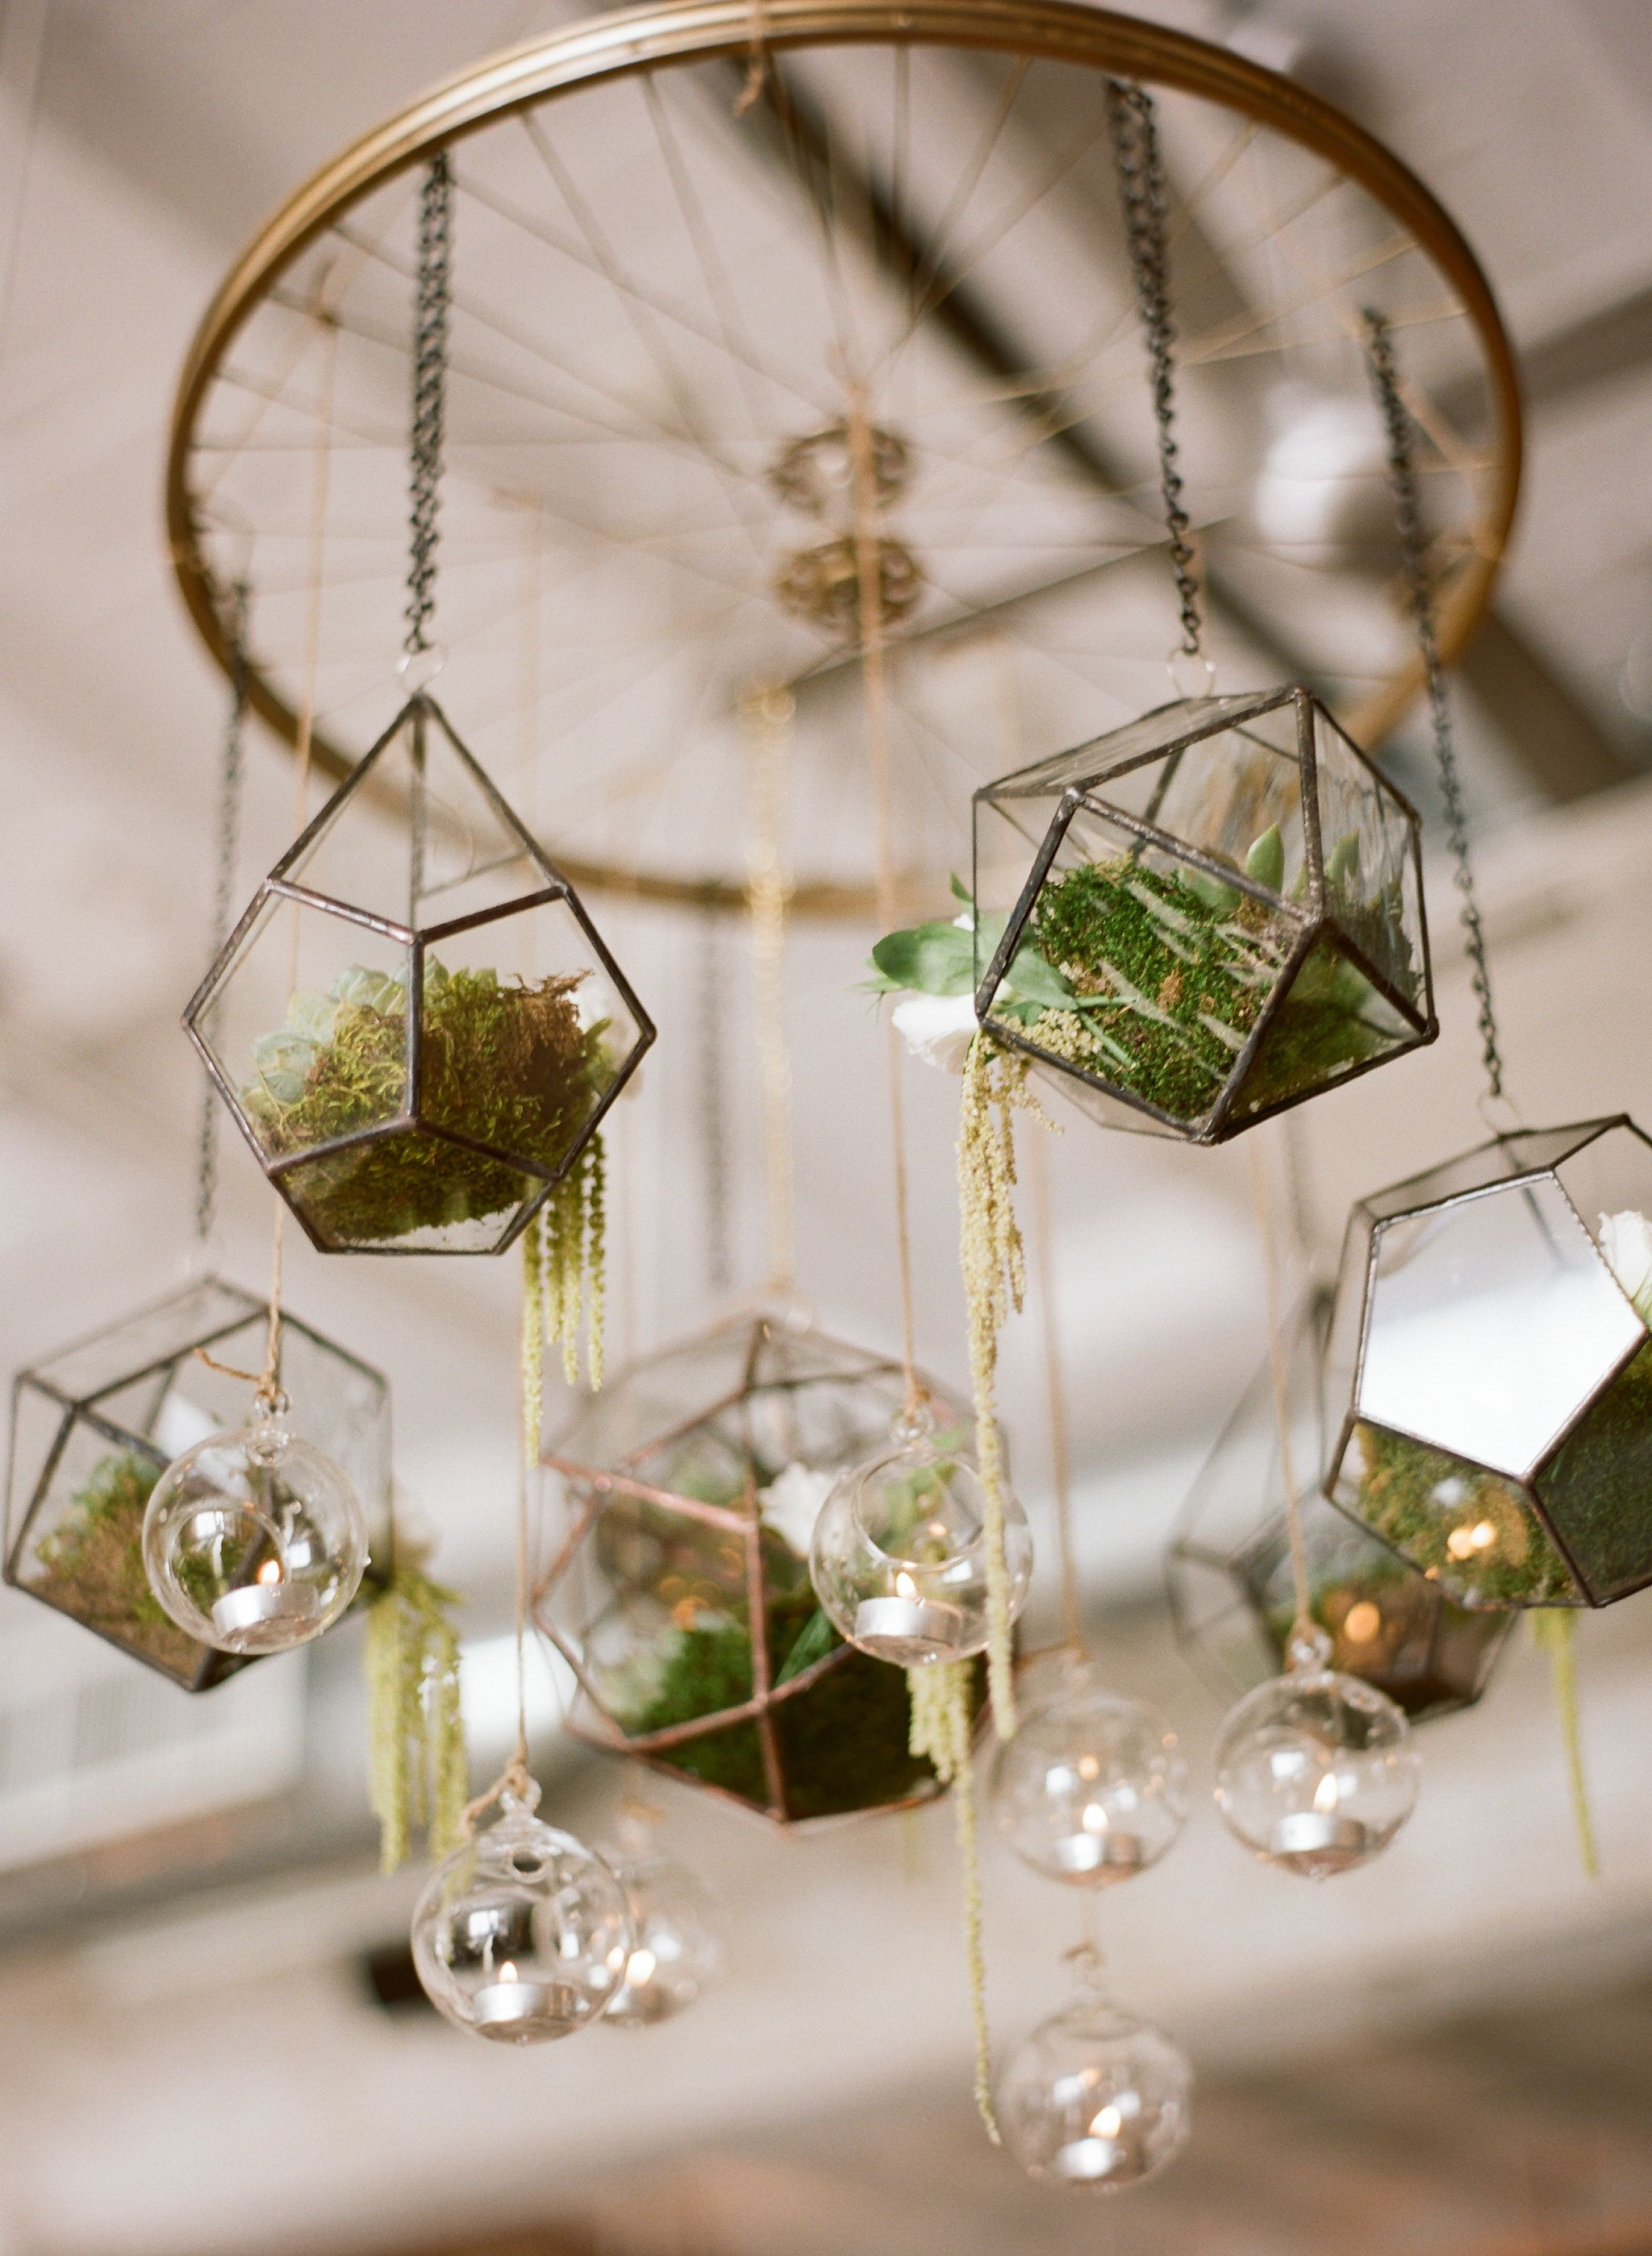 This Long View Gallery Wedding Used Hanging Terrariums In The Decor Washingtonian Dc Plant Decor Hanging Terrarium Terrarium Wedding